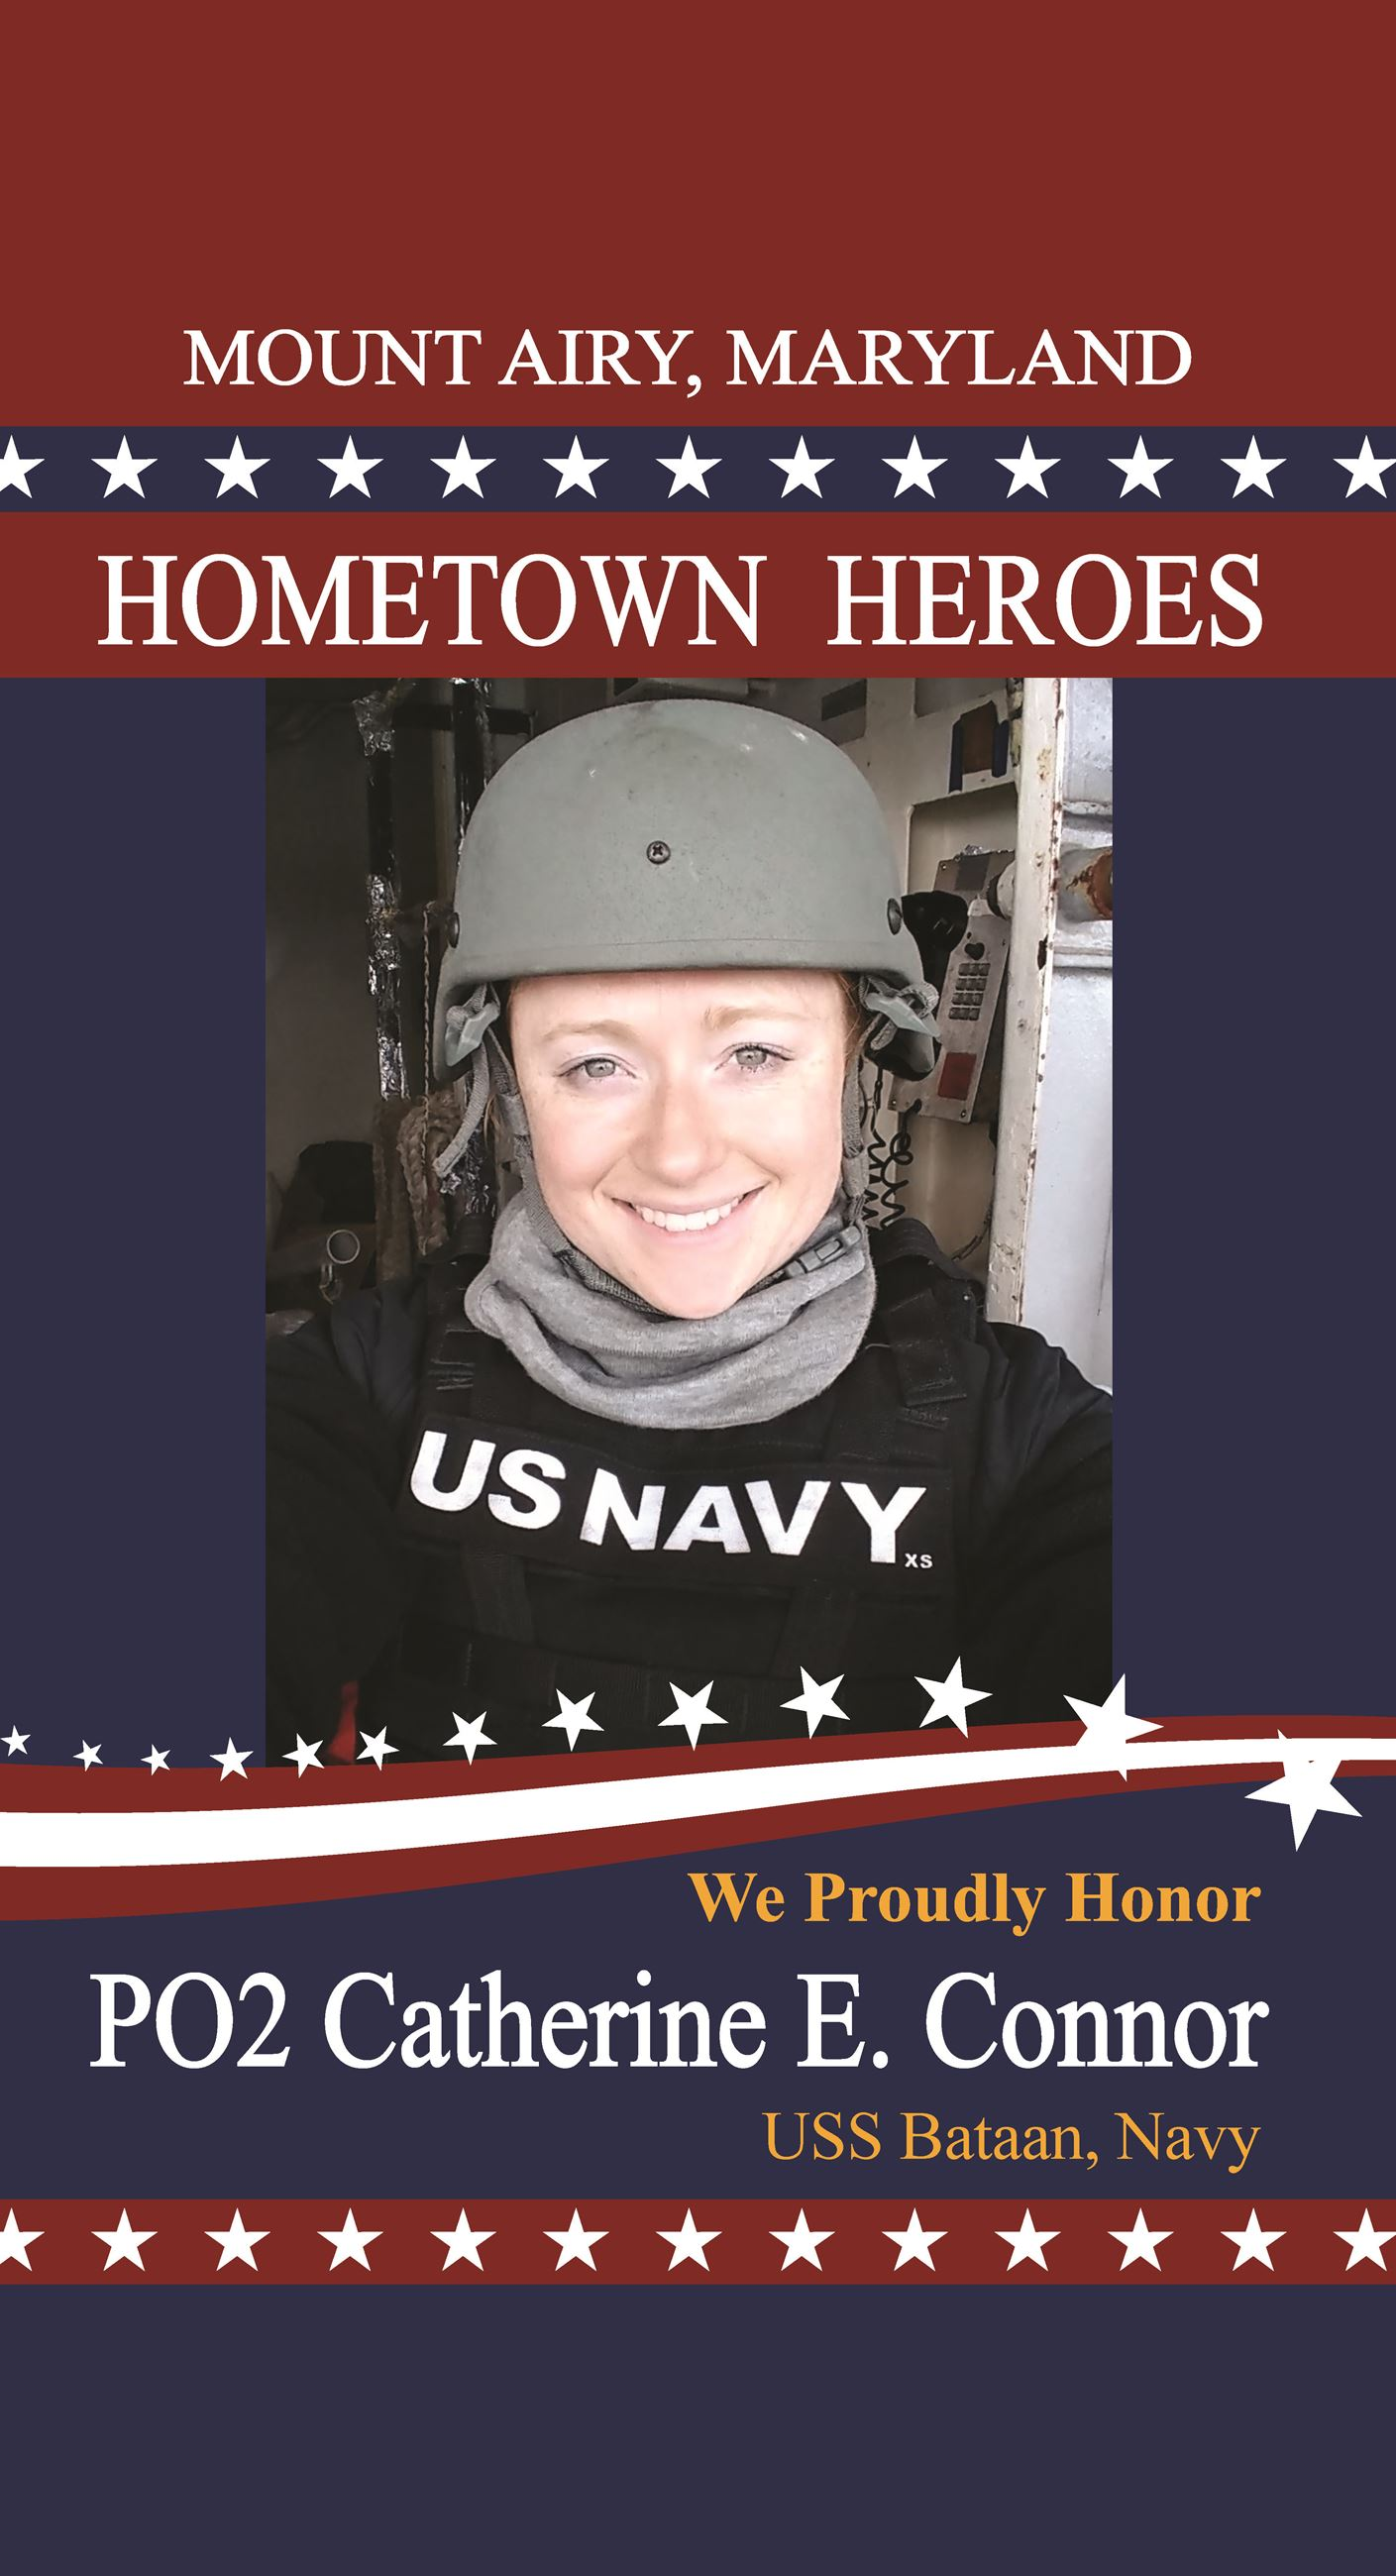 CatherineEConnor_MtAiryHeroes-Flag-24x44-Proof002